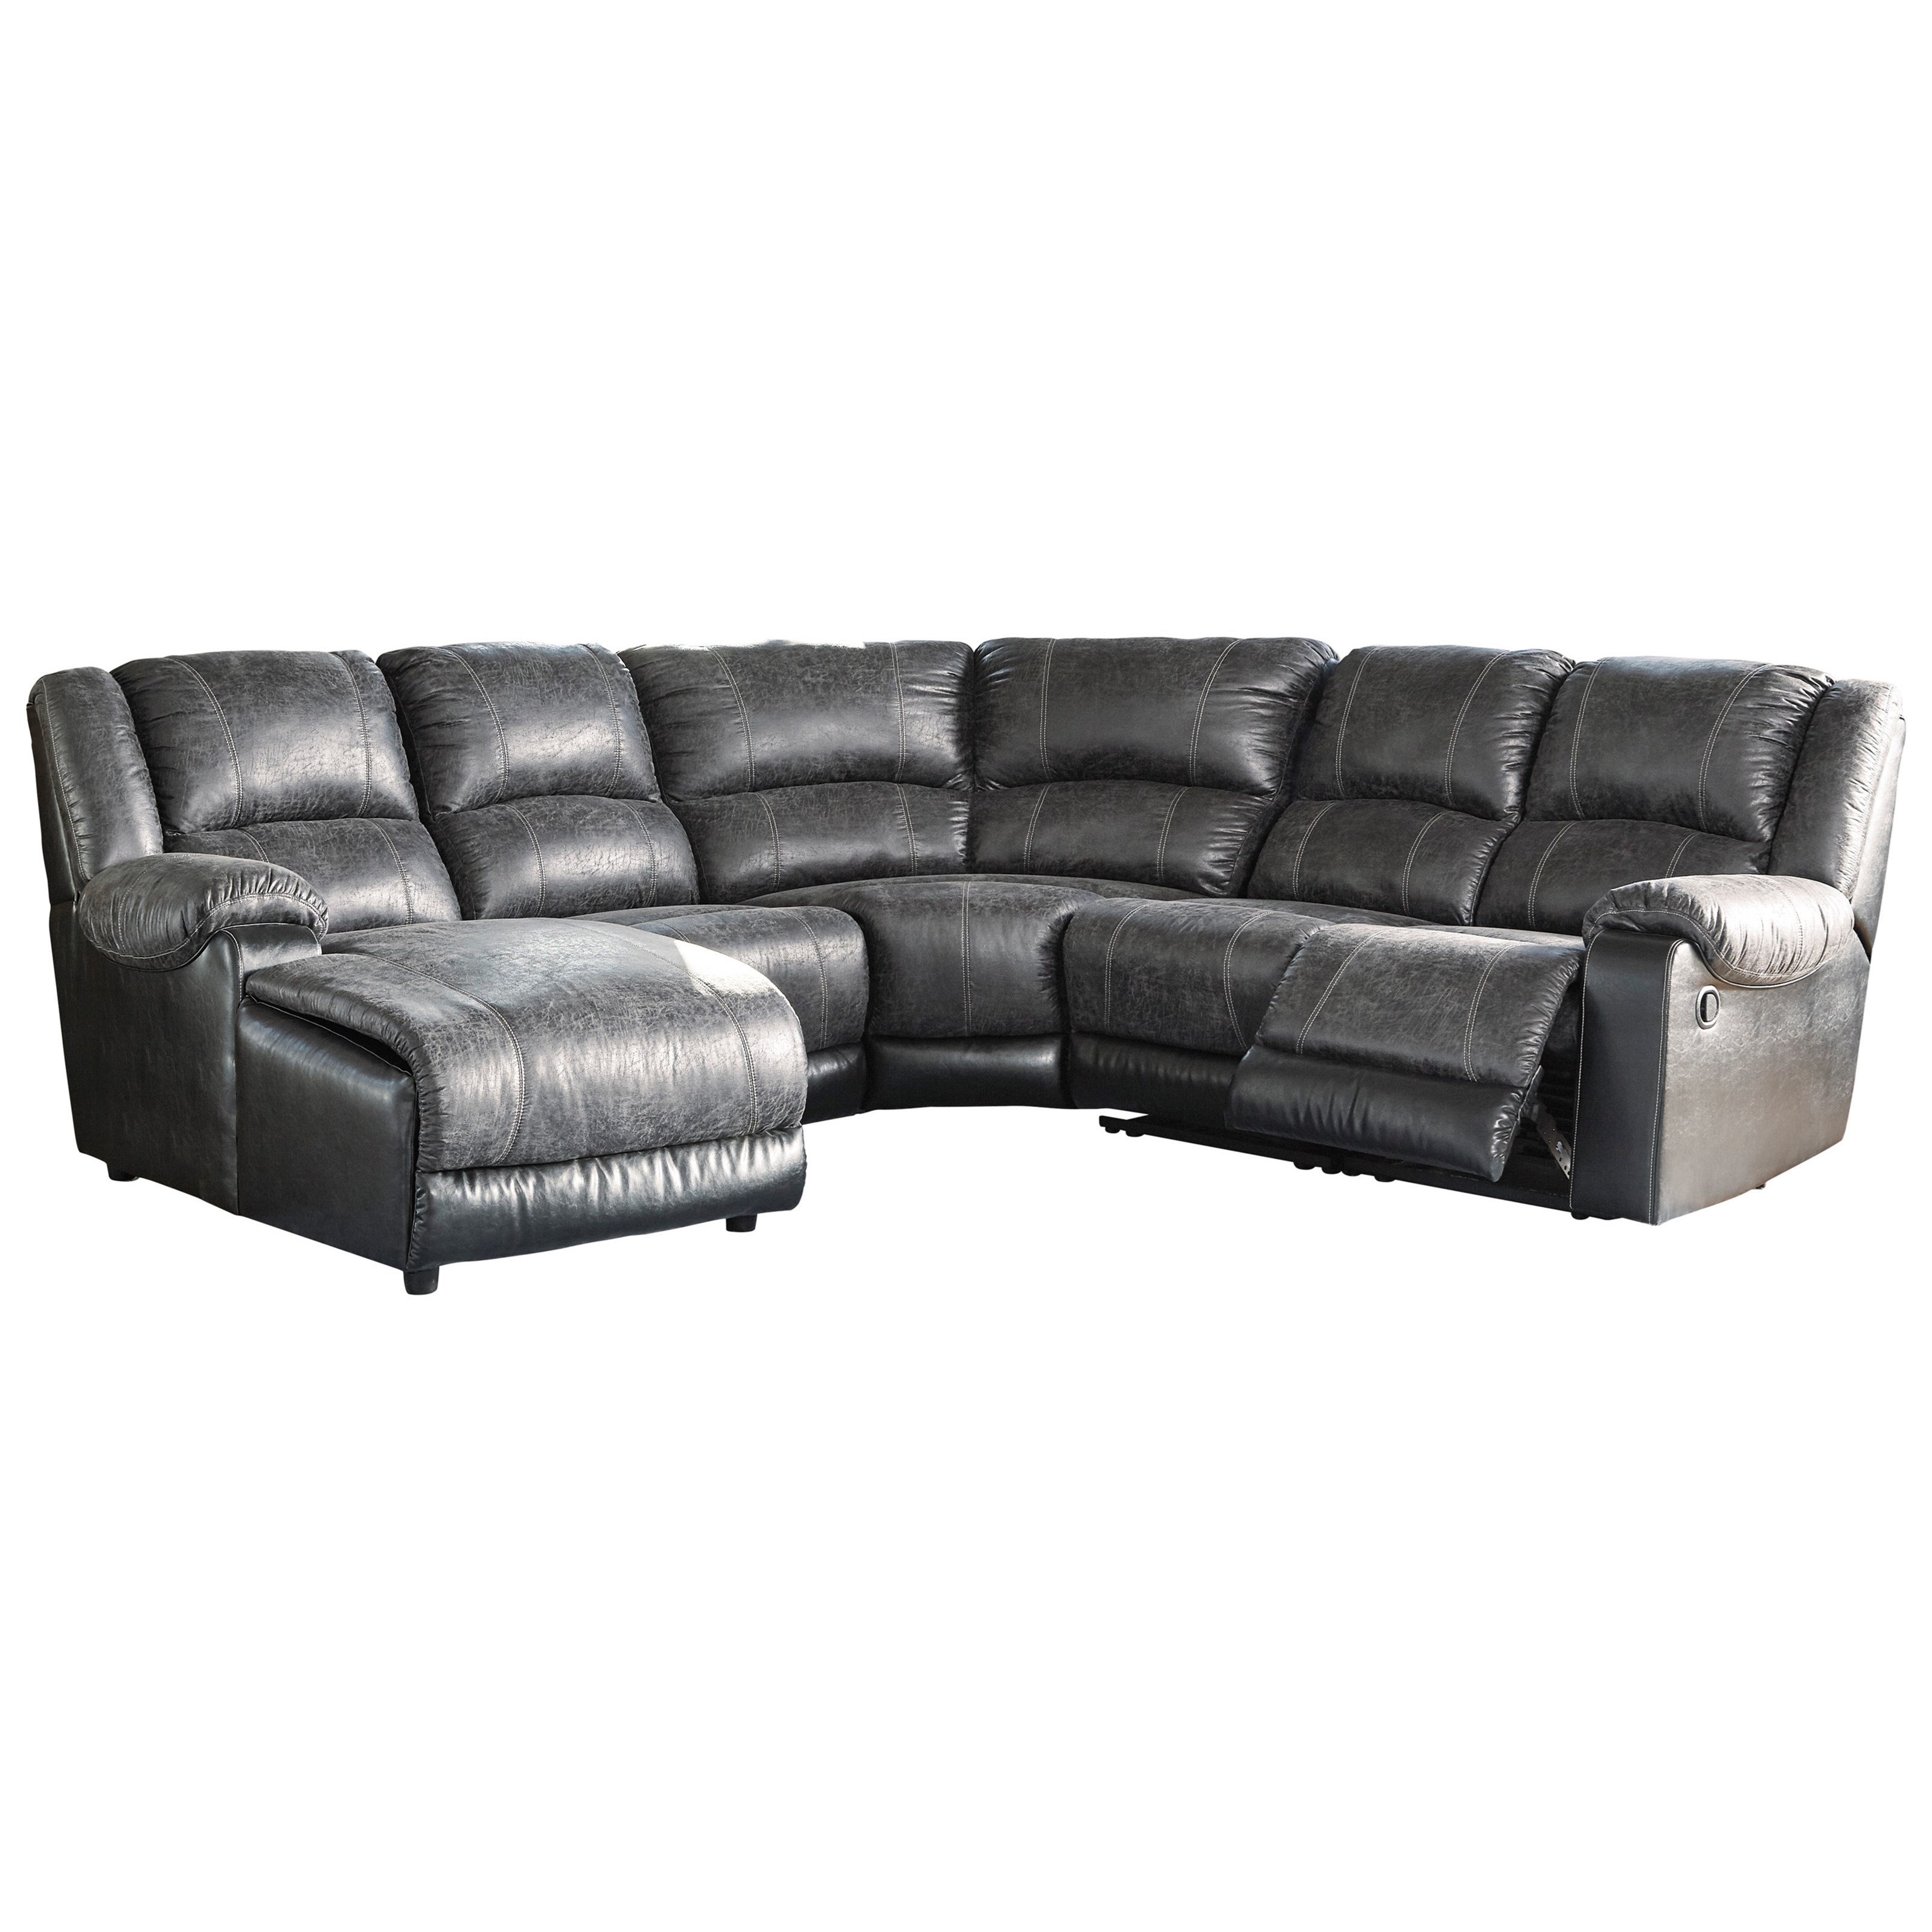 Signature design by ashley nantahala faux leather reclining sectional with chaise beck 39 s - Leather reclining sectional with chaise ...